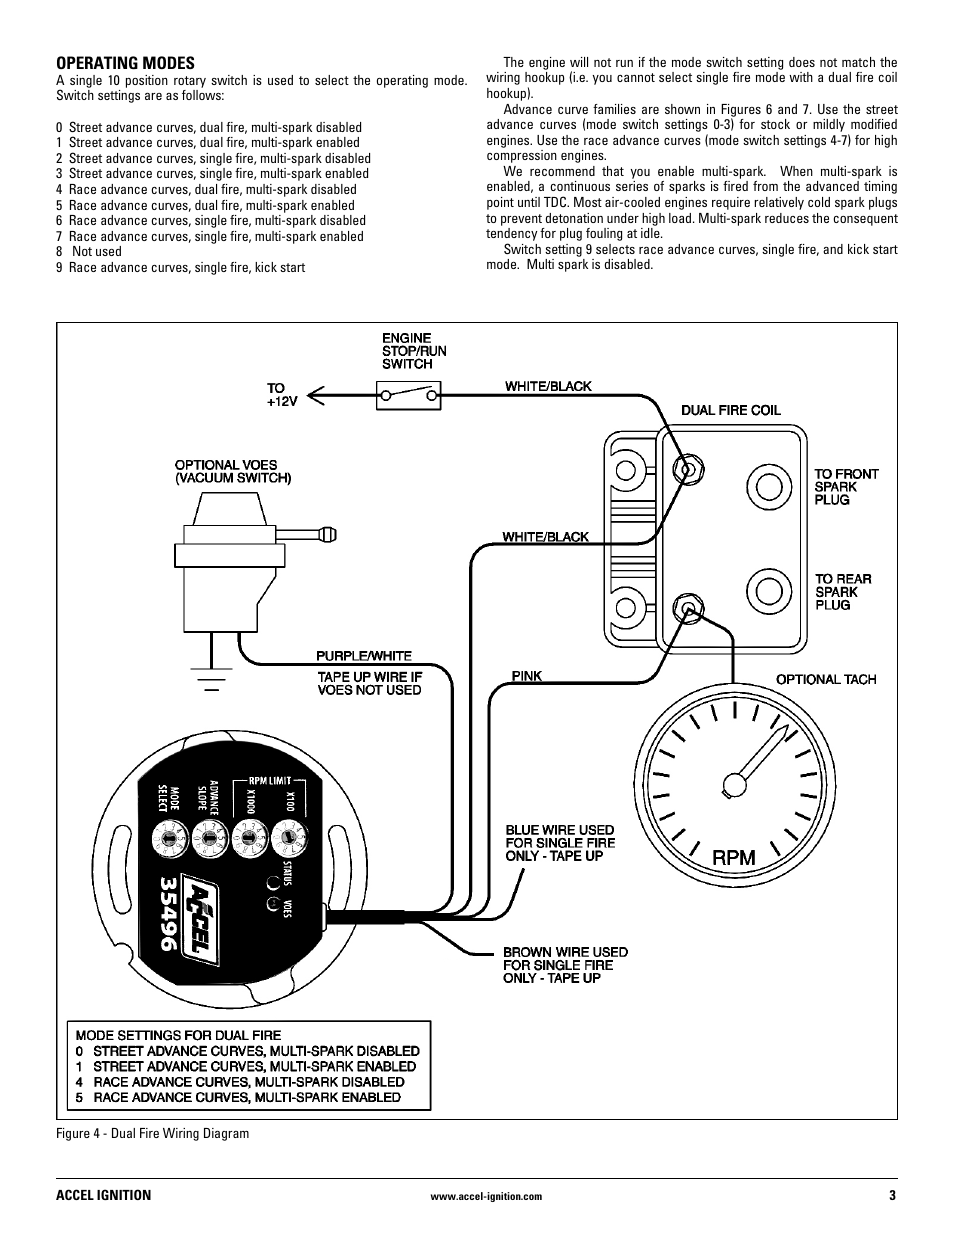 mallory ignition accel ignition 35496 user manual page 3 8 rh manualsdir com